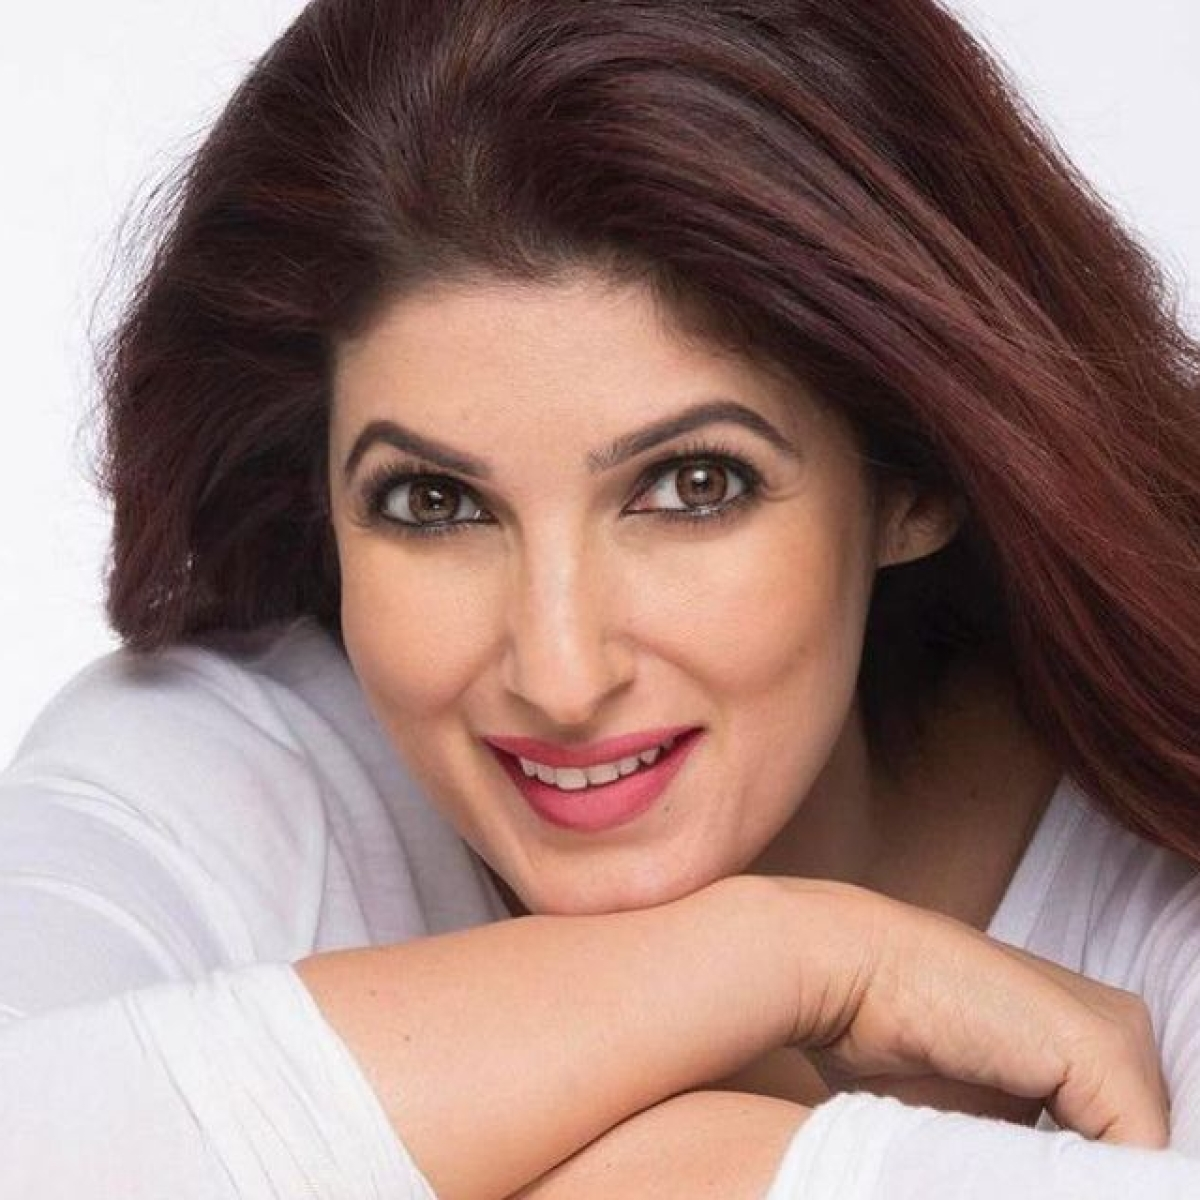 Twinkle Khanna hits back at allegations of 'richest actor' Akshay Kumar not helping enough amid COVID-19 crisis